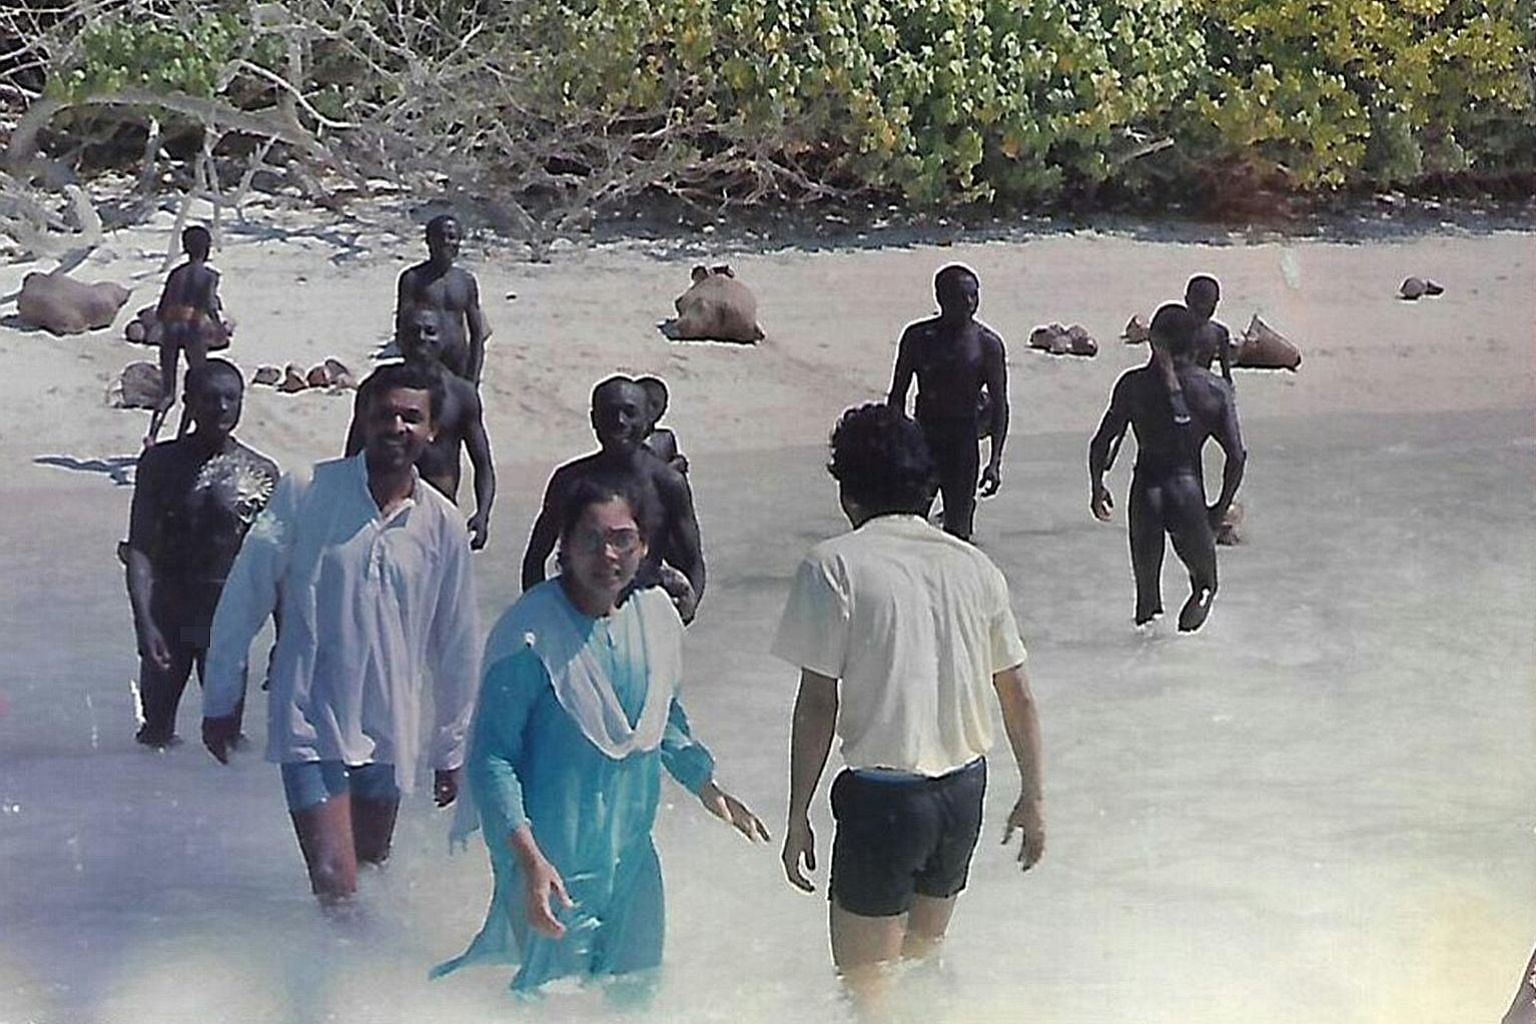 Dr Madhumala Chattopadhyay and her team broke the ice with the Sentinelese by offering them lots of coconuts.